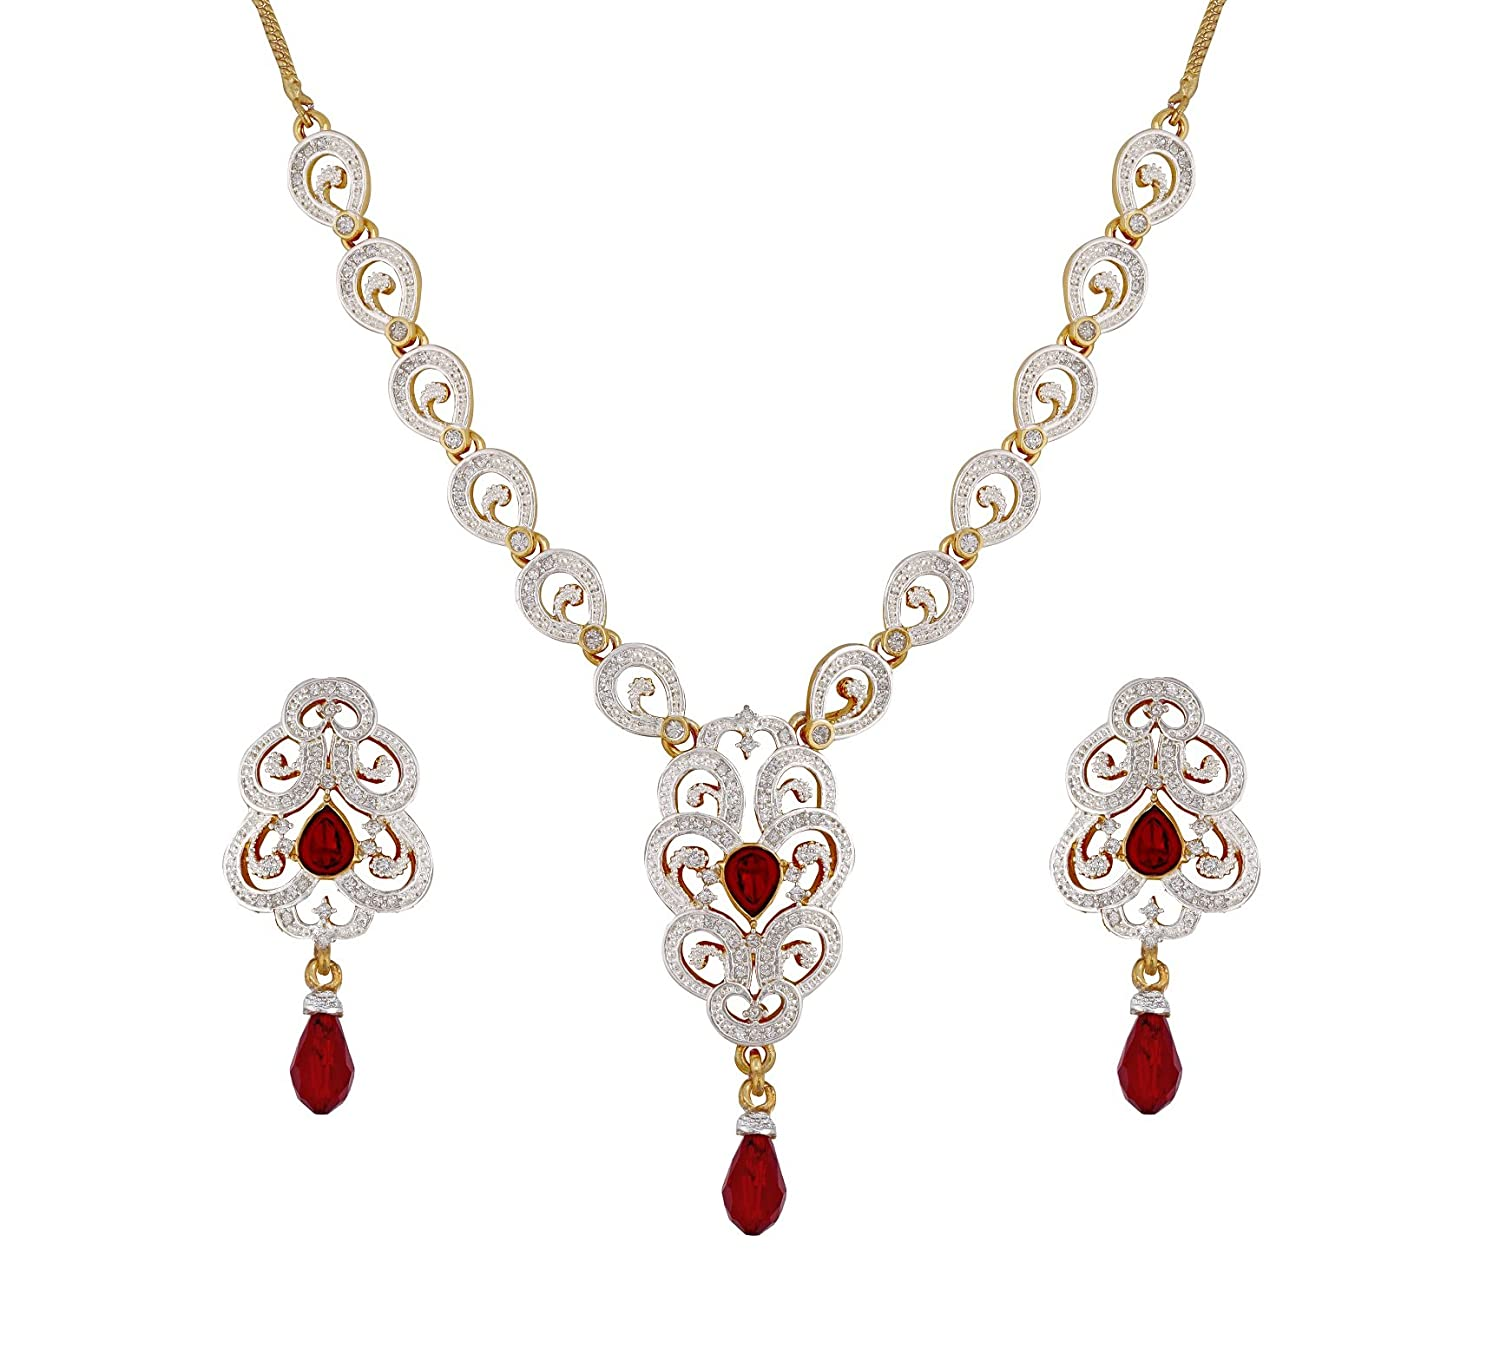 Buy sempre of london ruby red imperial cz crystal diamonds pendant buy sempre of london ruby red imperial cz crystal diamonds pendant necklace with earrings for women online at low prices in india amazon jewellery store mozeypictures Image collections